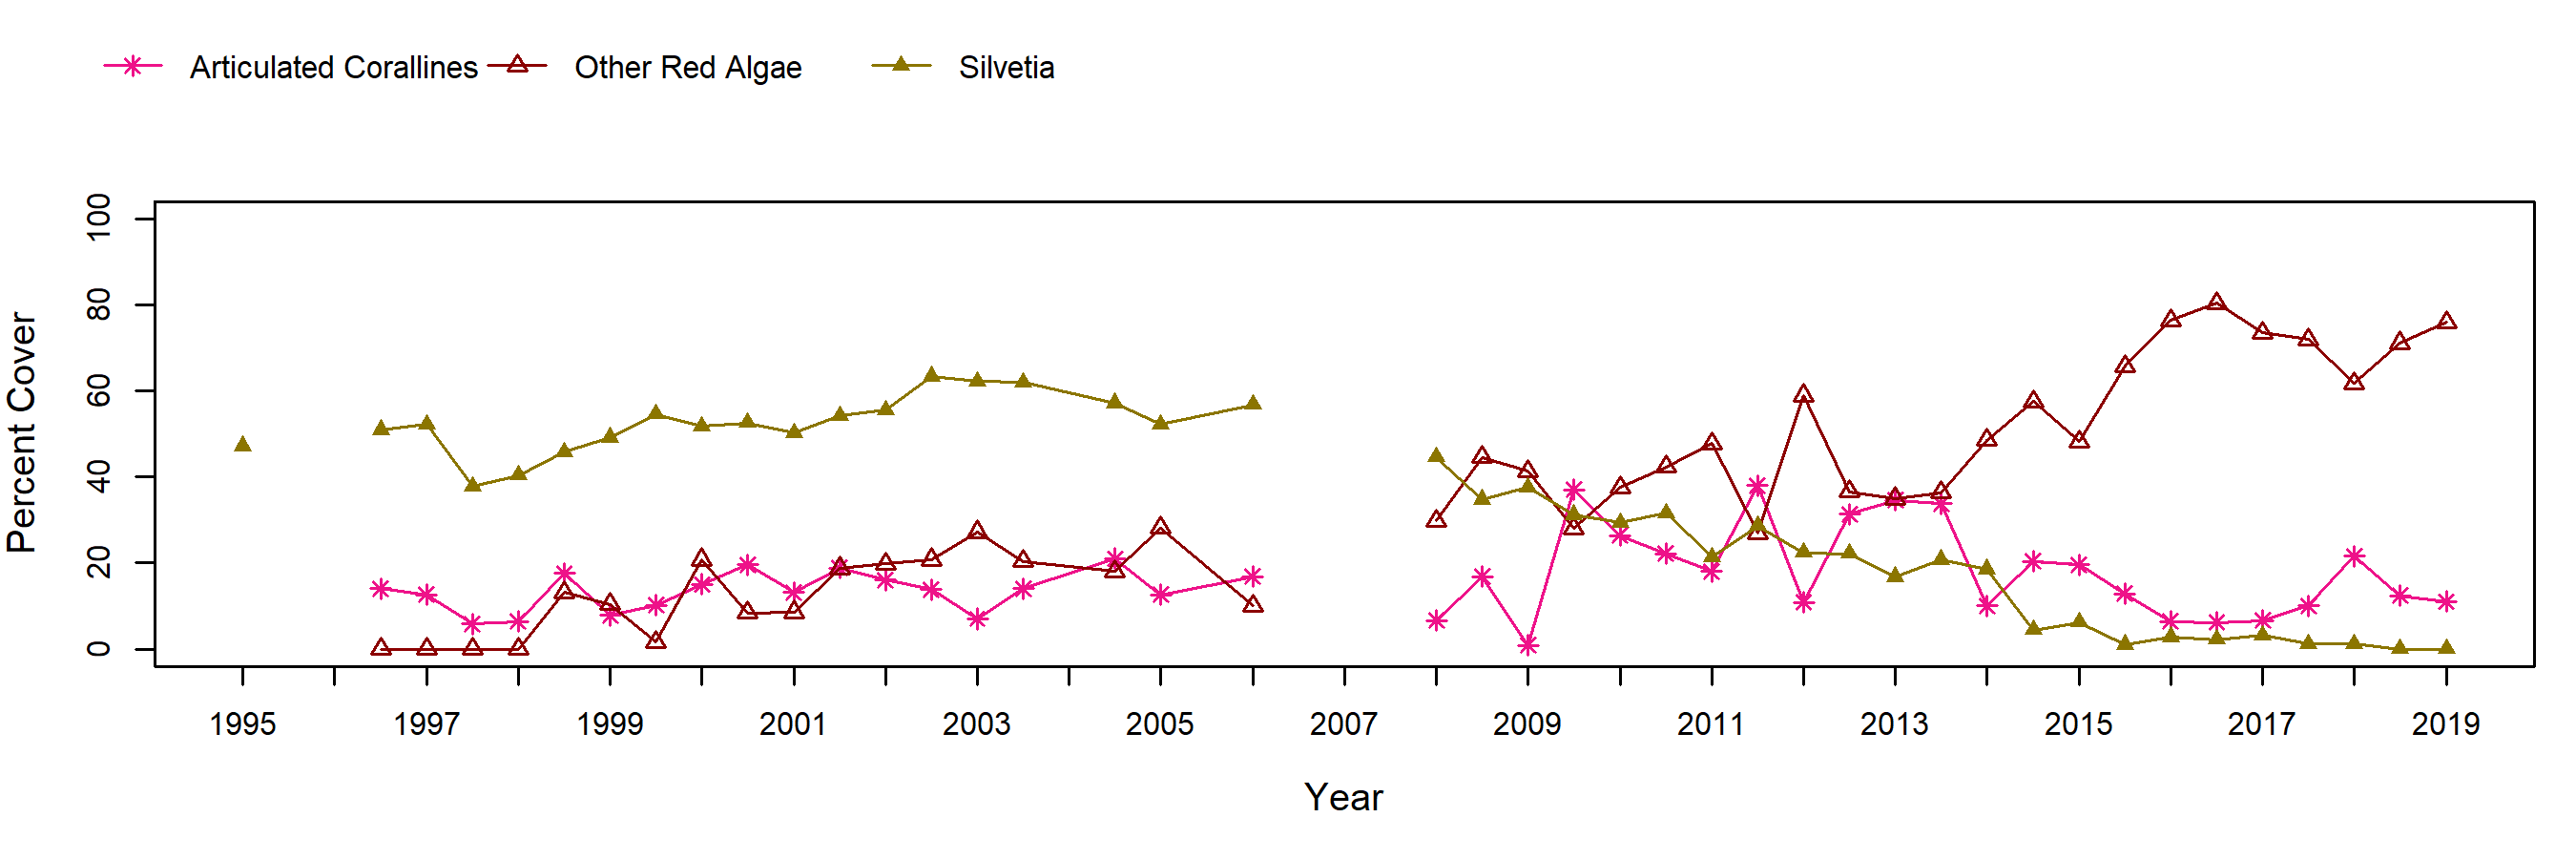 Navy South Silvetia trend plot